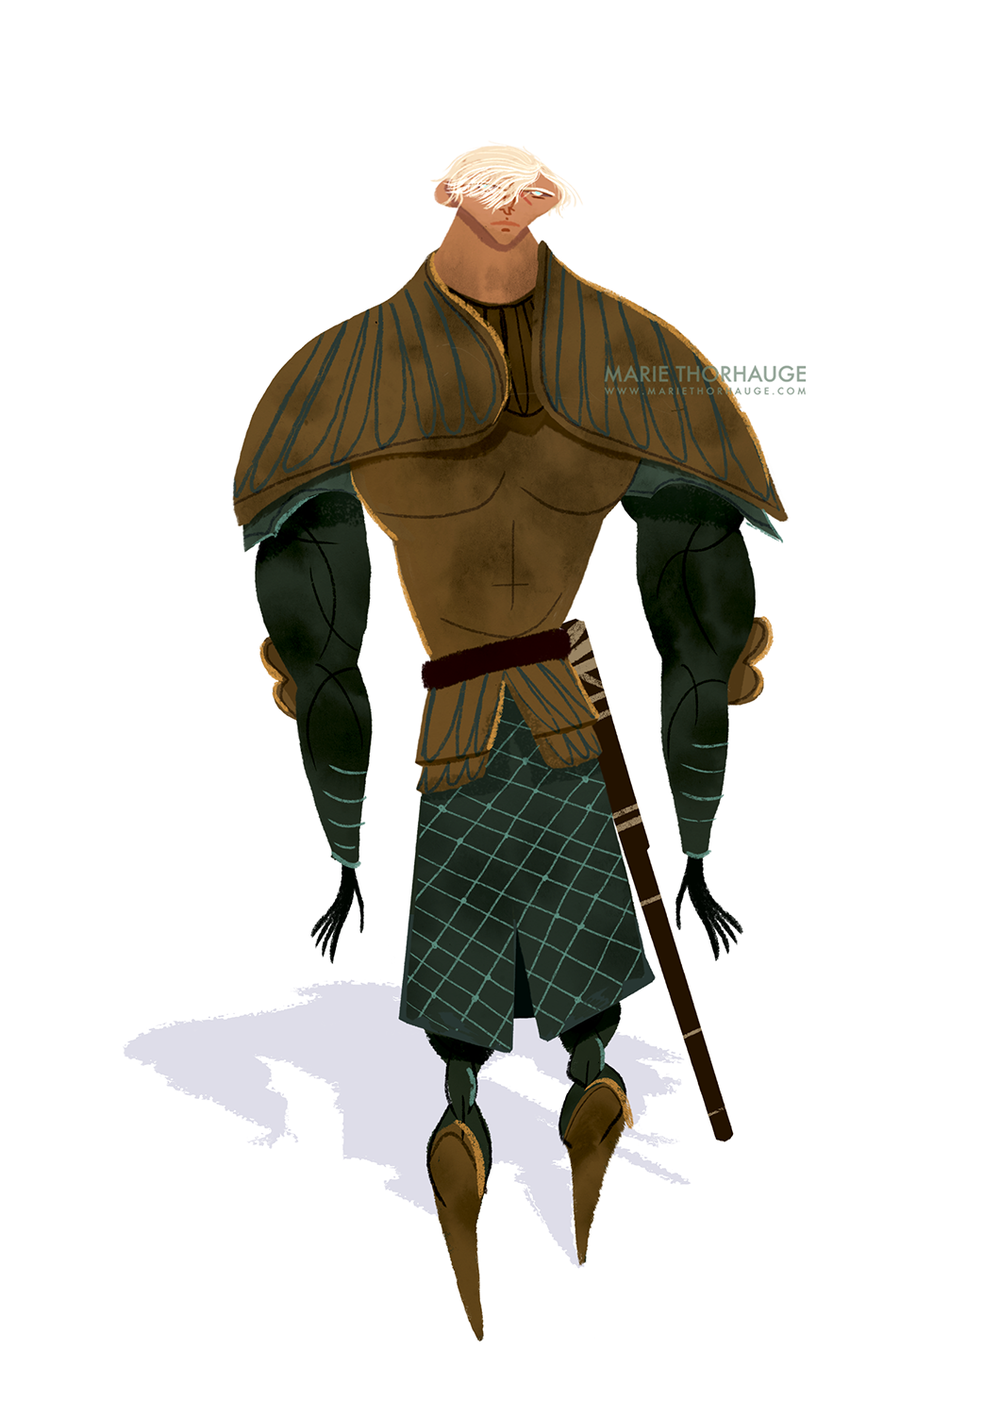 2014_Marie-Thorhauge_GOT_Brienne-of-Tarth.png